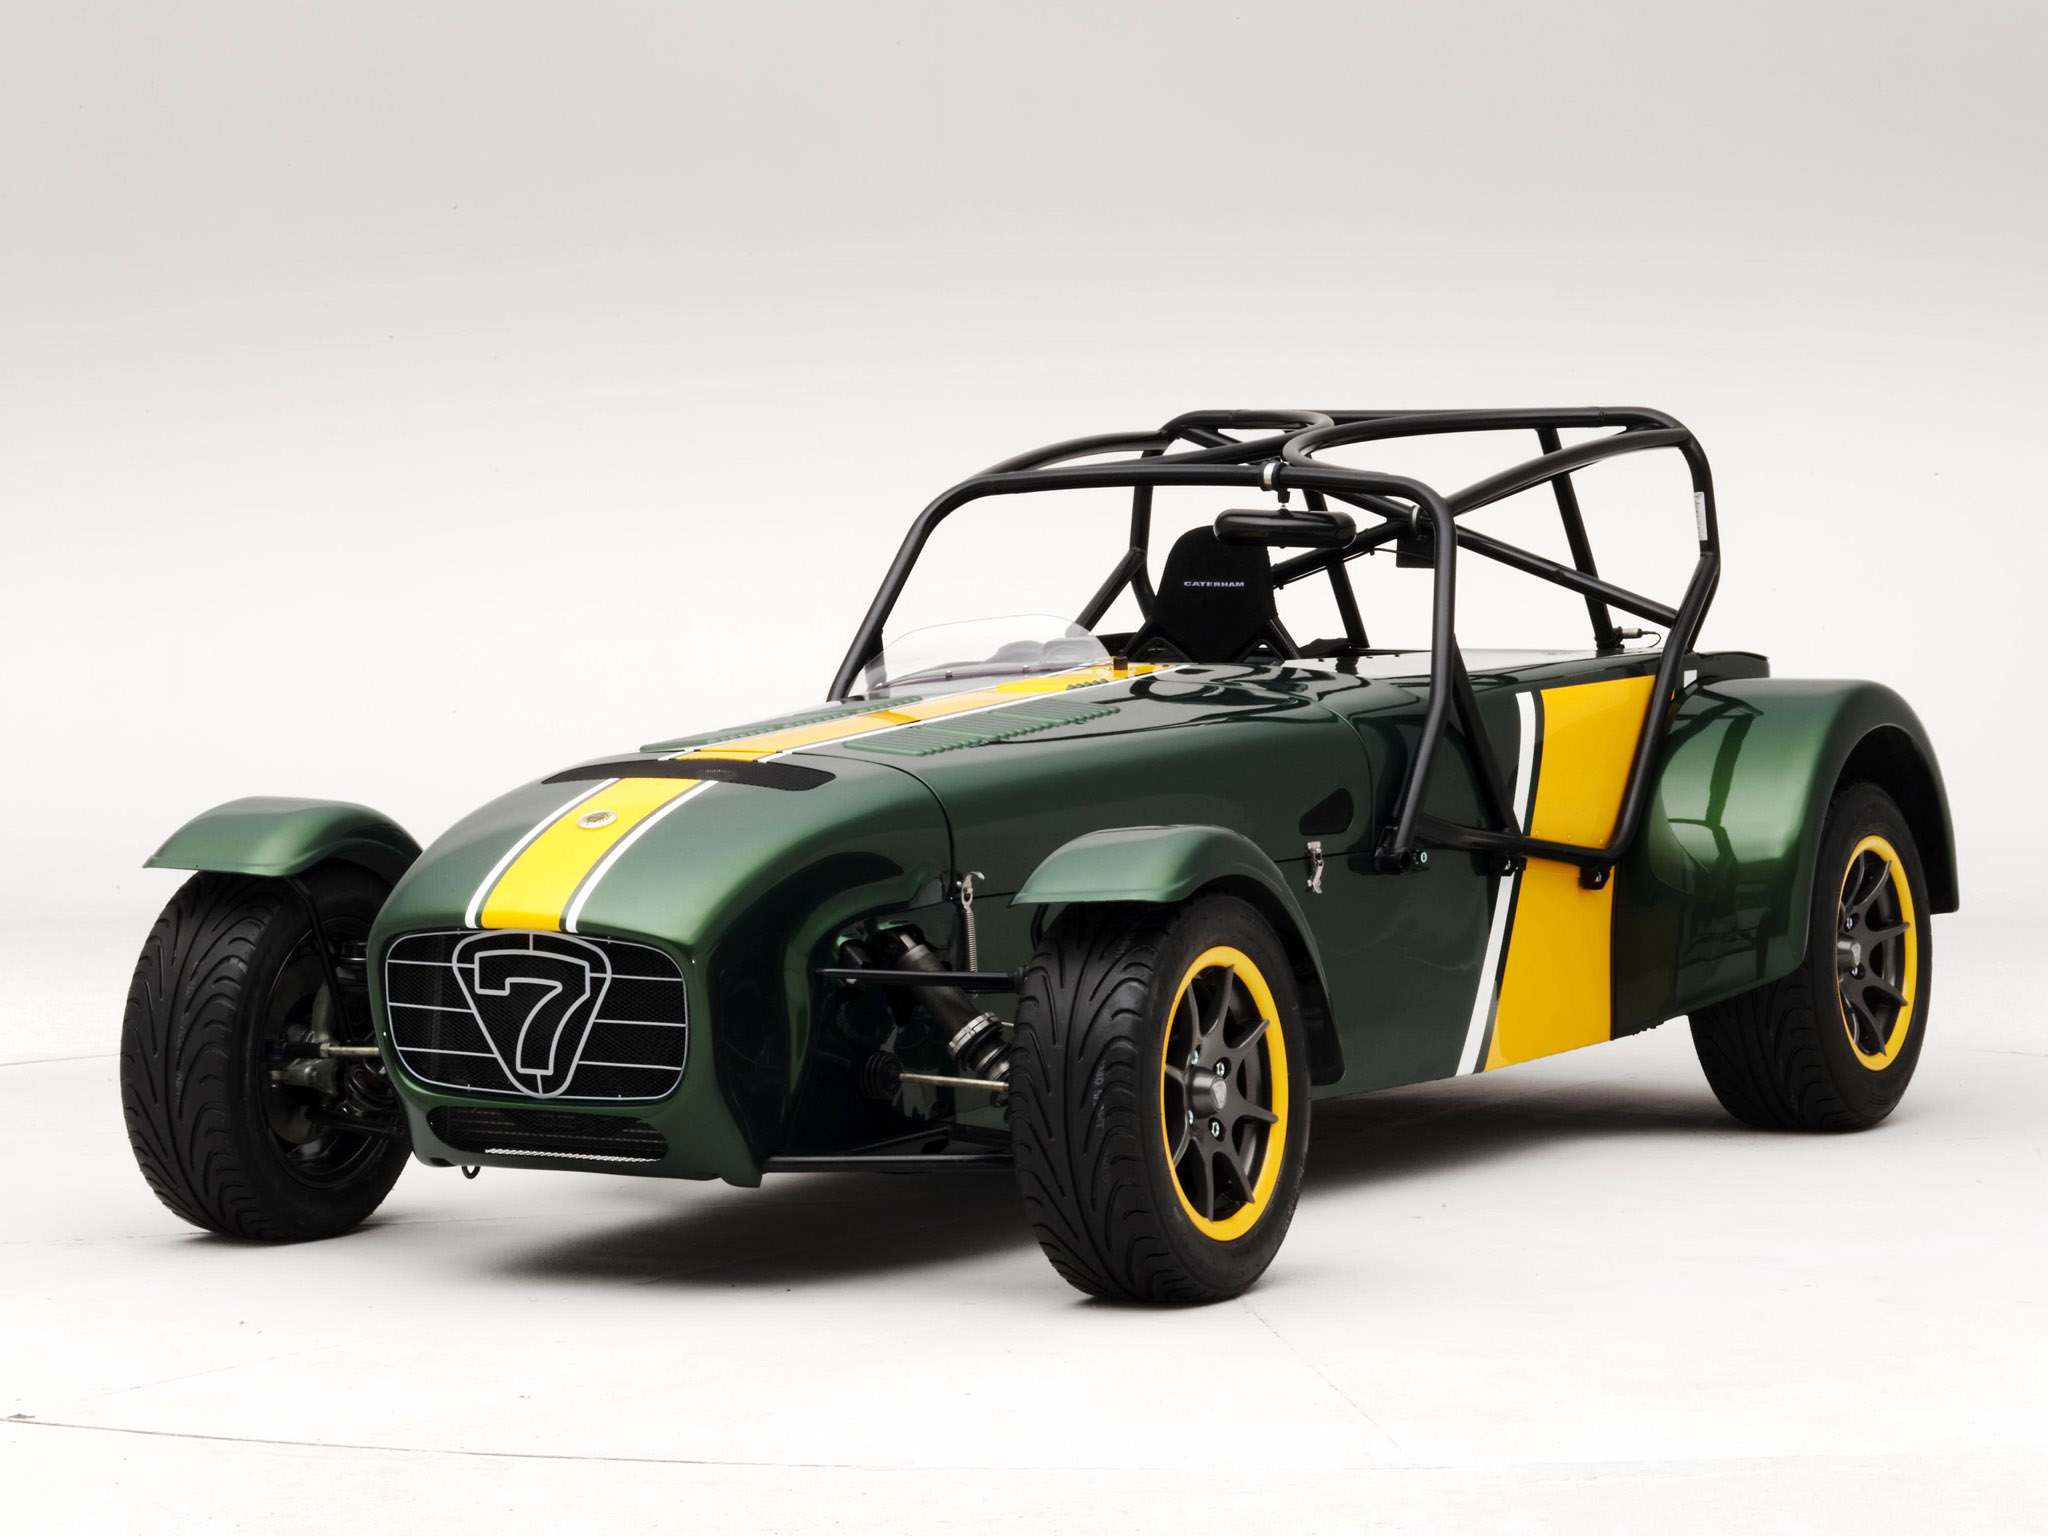 caterham seven superlight r500 team lotus livery 2011 caterham seven superlight r500 team lotus. Black Bedroom Furniture Sets. Home Design Ideas